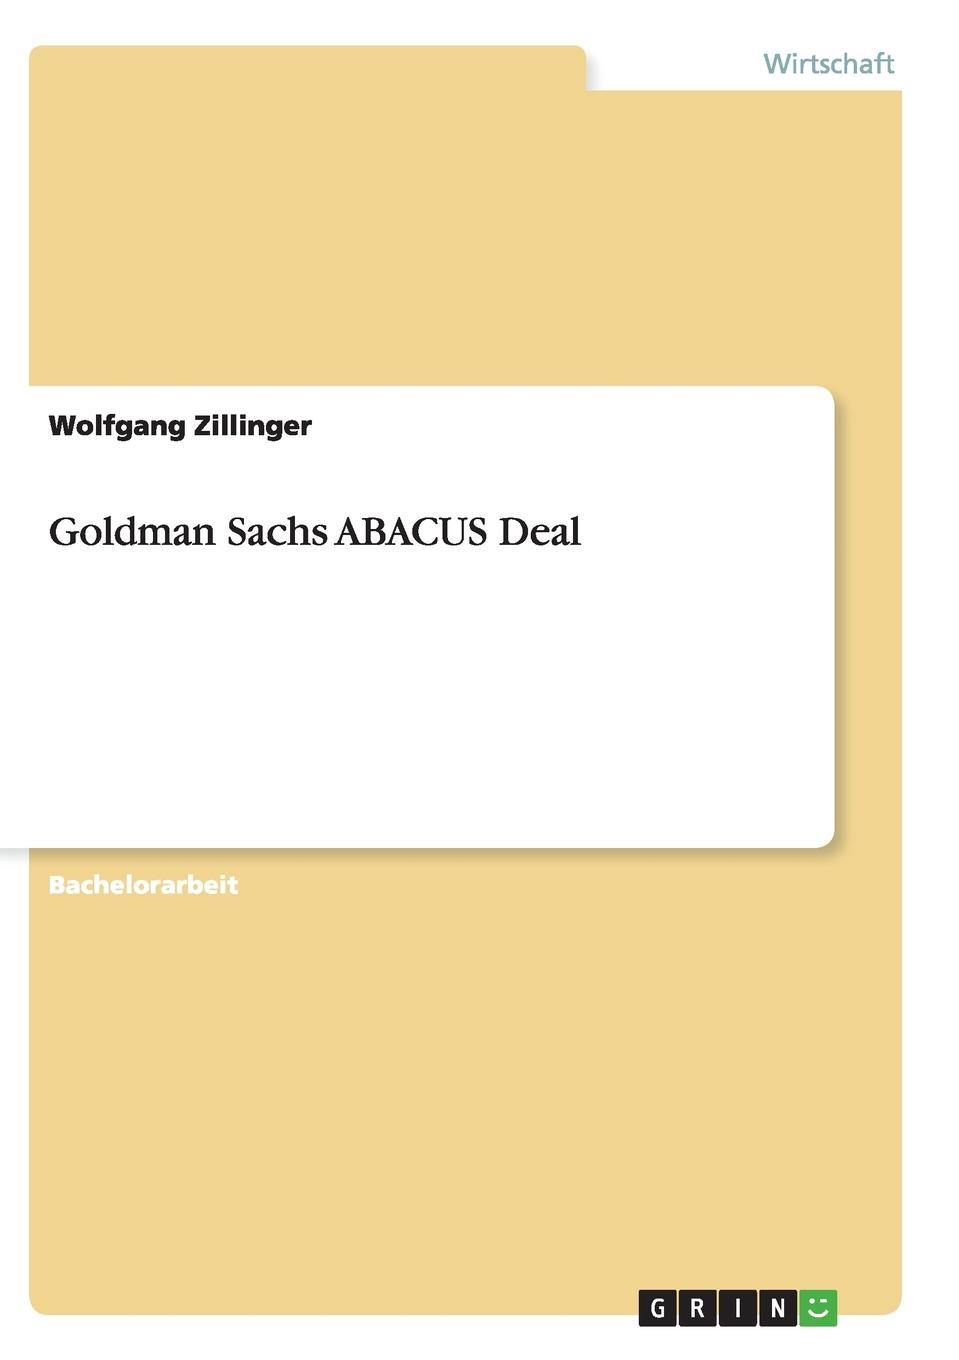 Wolfgang Zillinger Goldman Sachs ABACUS Deal